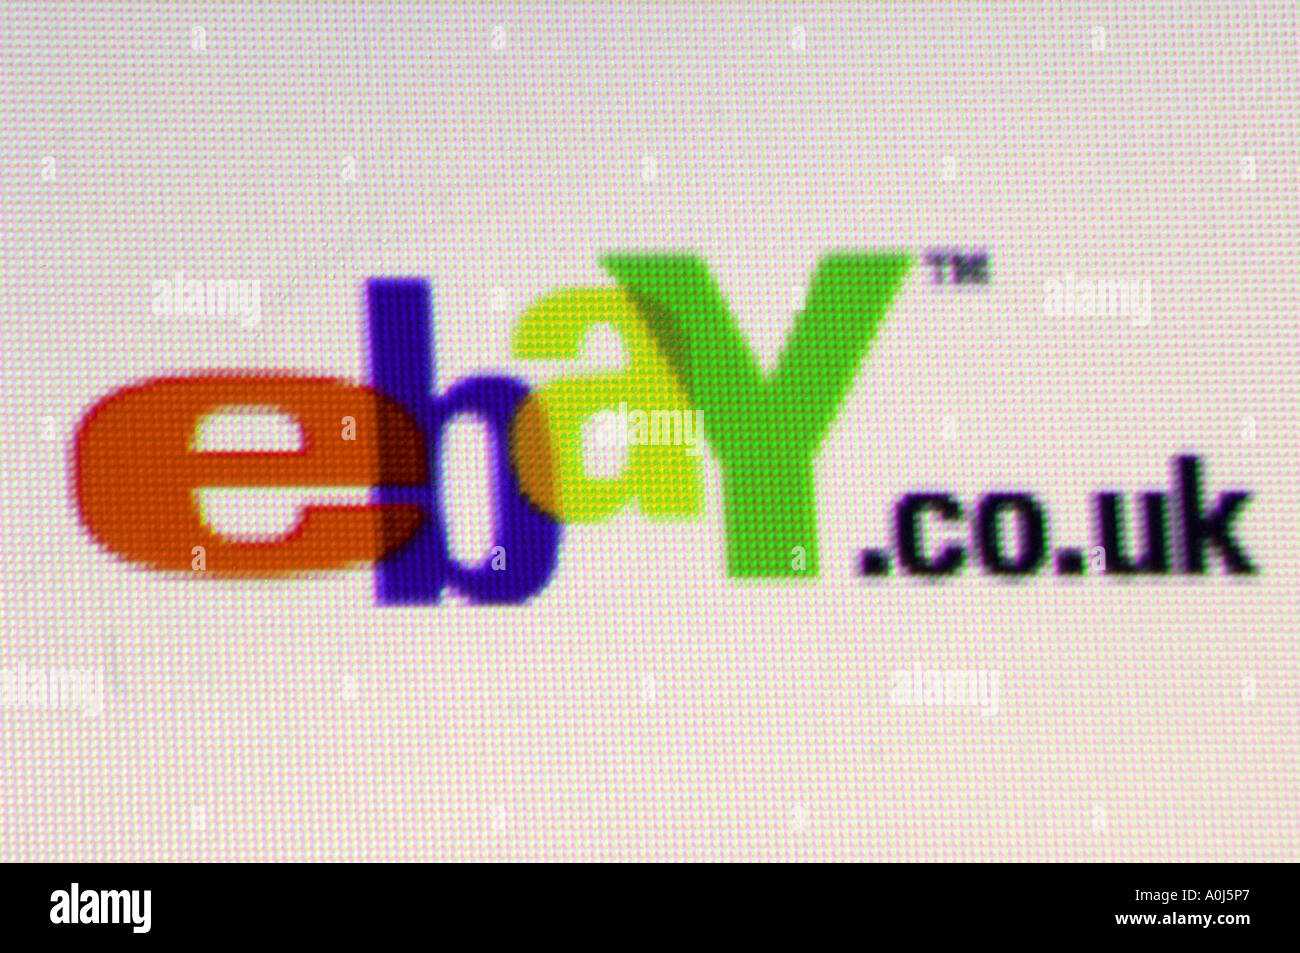 Ebay Co Uk Ebay Logo Brand Design Graphic Stock Photo Alamy